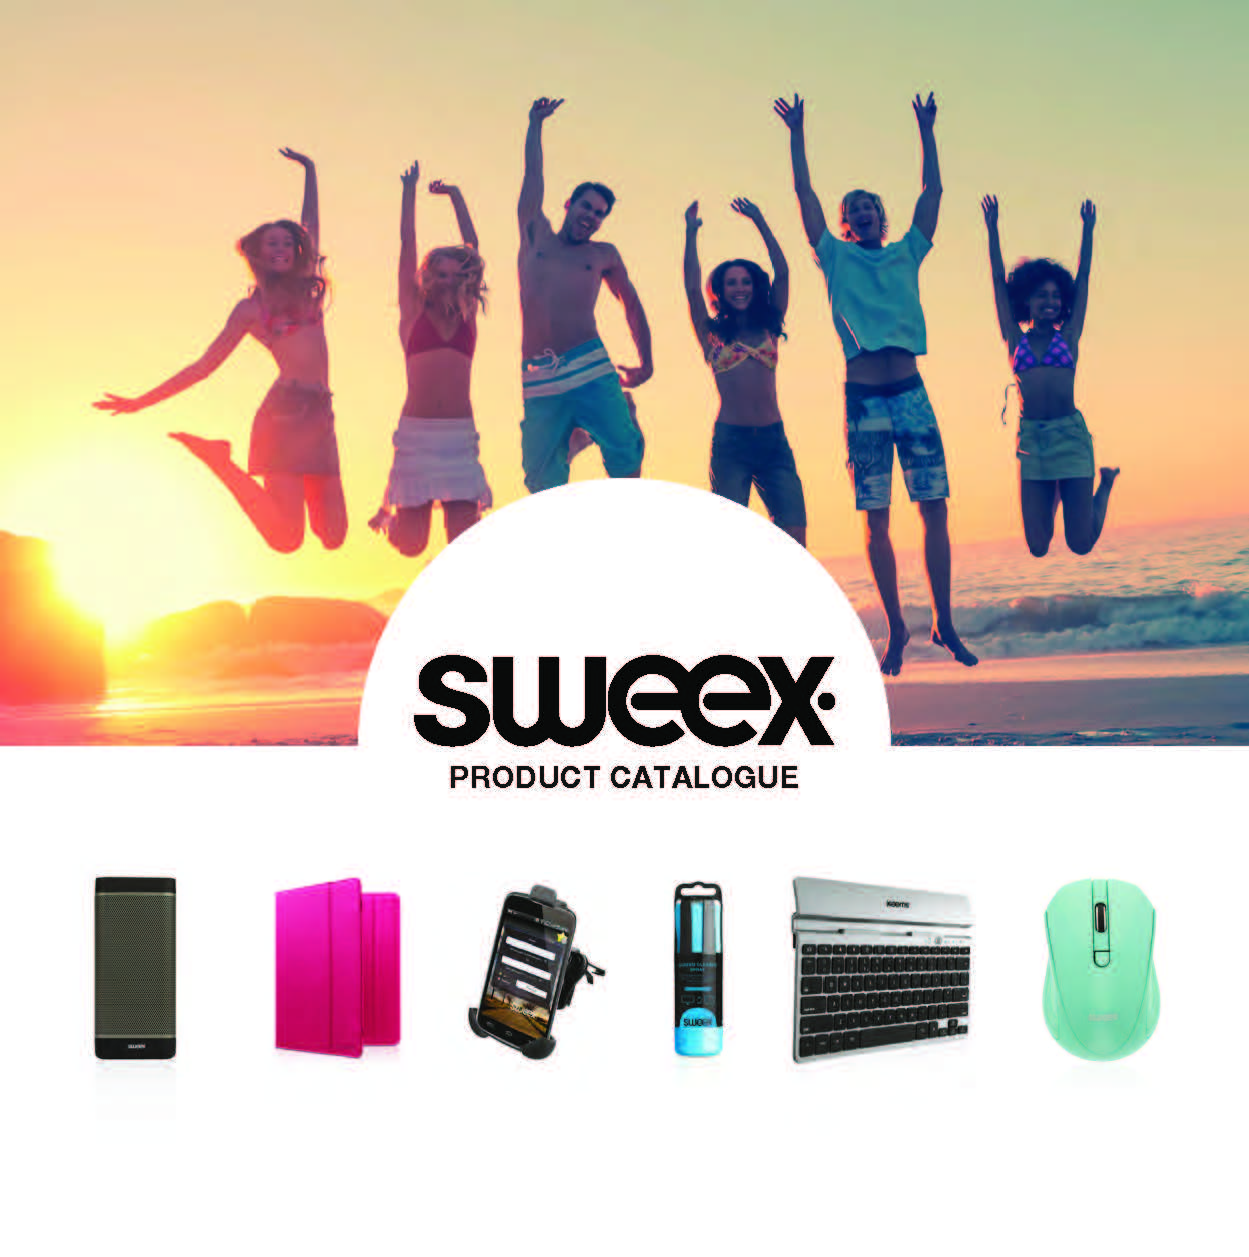 Sweex products Catalogue